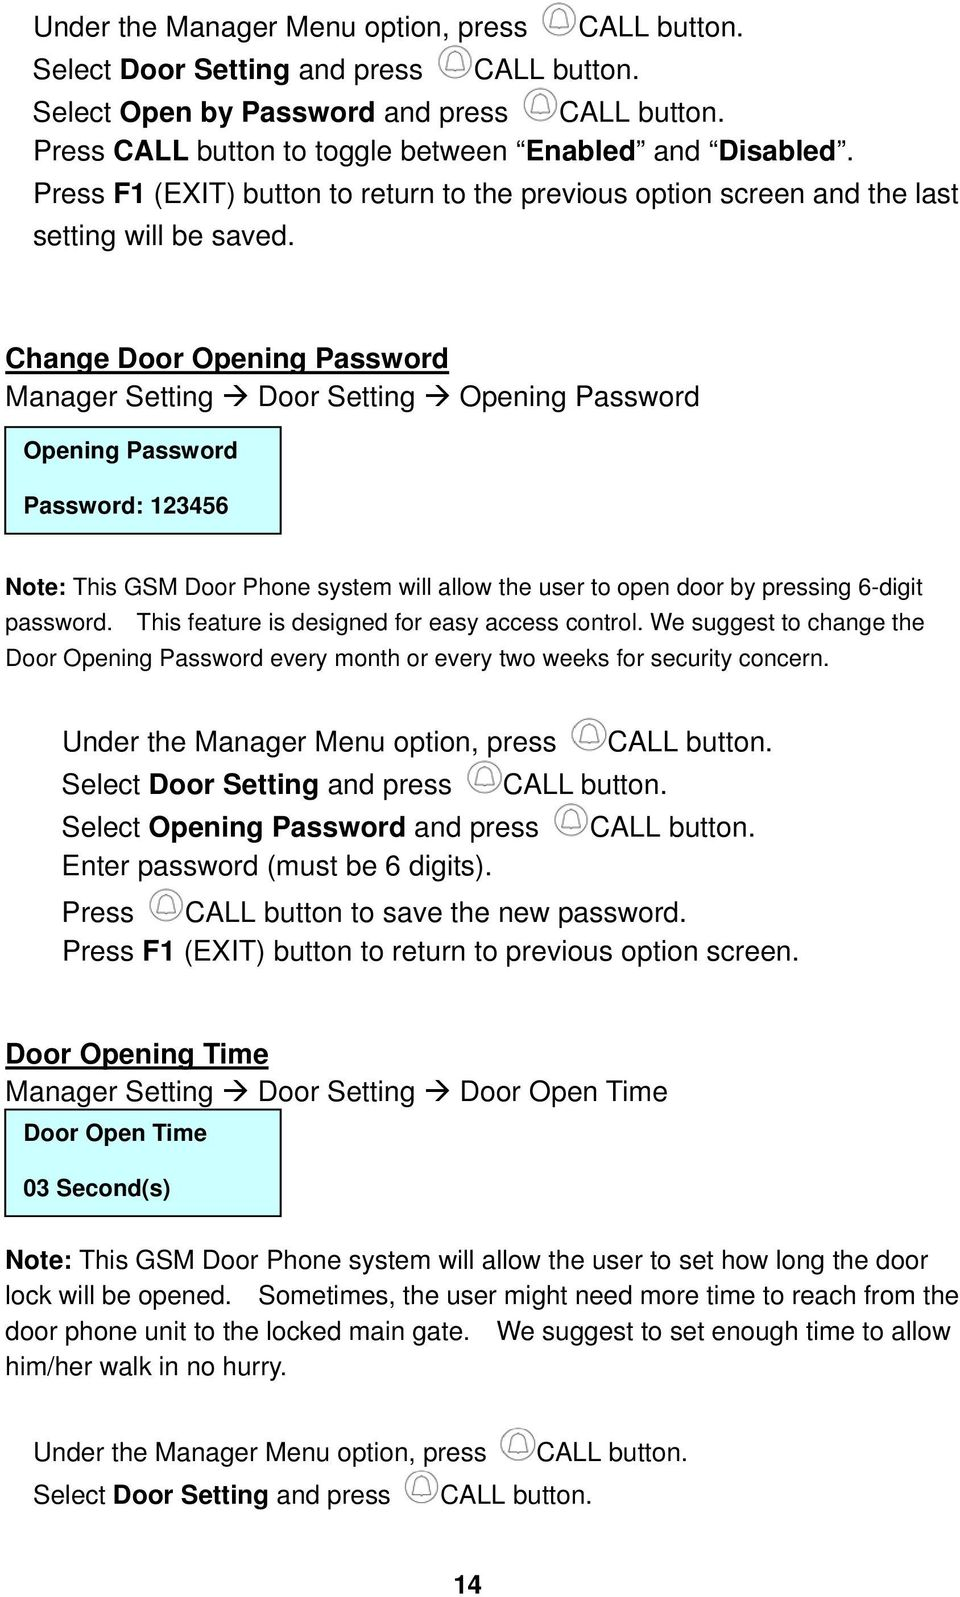 Change Door Opening Password Manager Setting Door Setting Opening Password Opening Password Password: 123456 Note: This GSM Door Phone system will allow the user to open door by pressing 6-digit